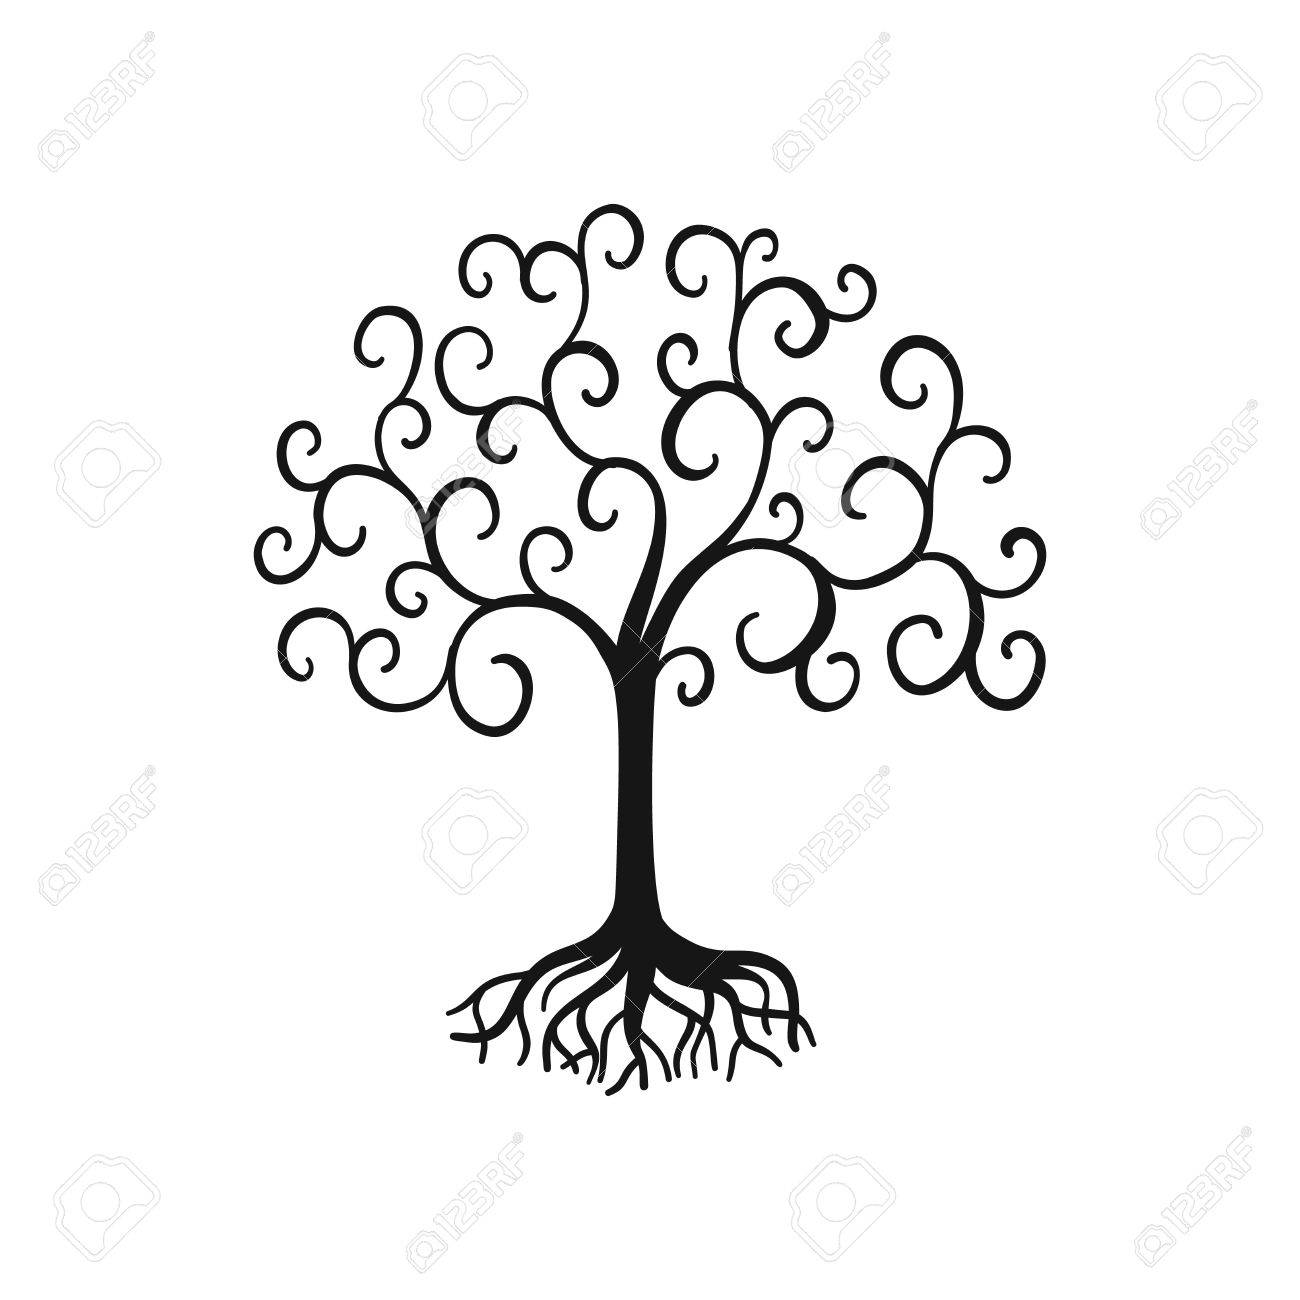 vector tree of life royalty free cliparts vectors and stock rh 123rf com tree of life vector clip art tree of life vector art